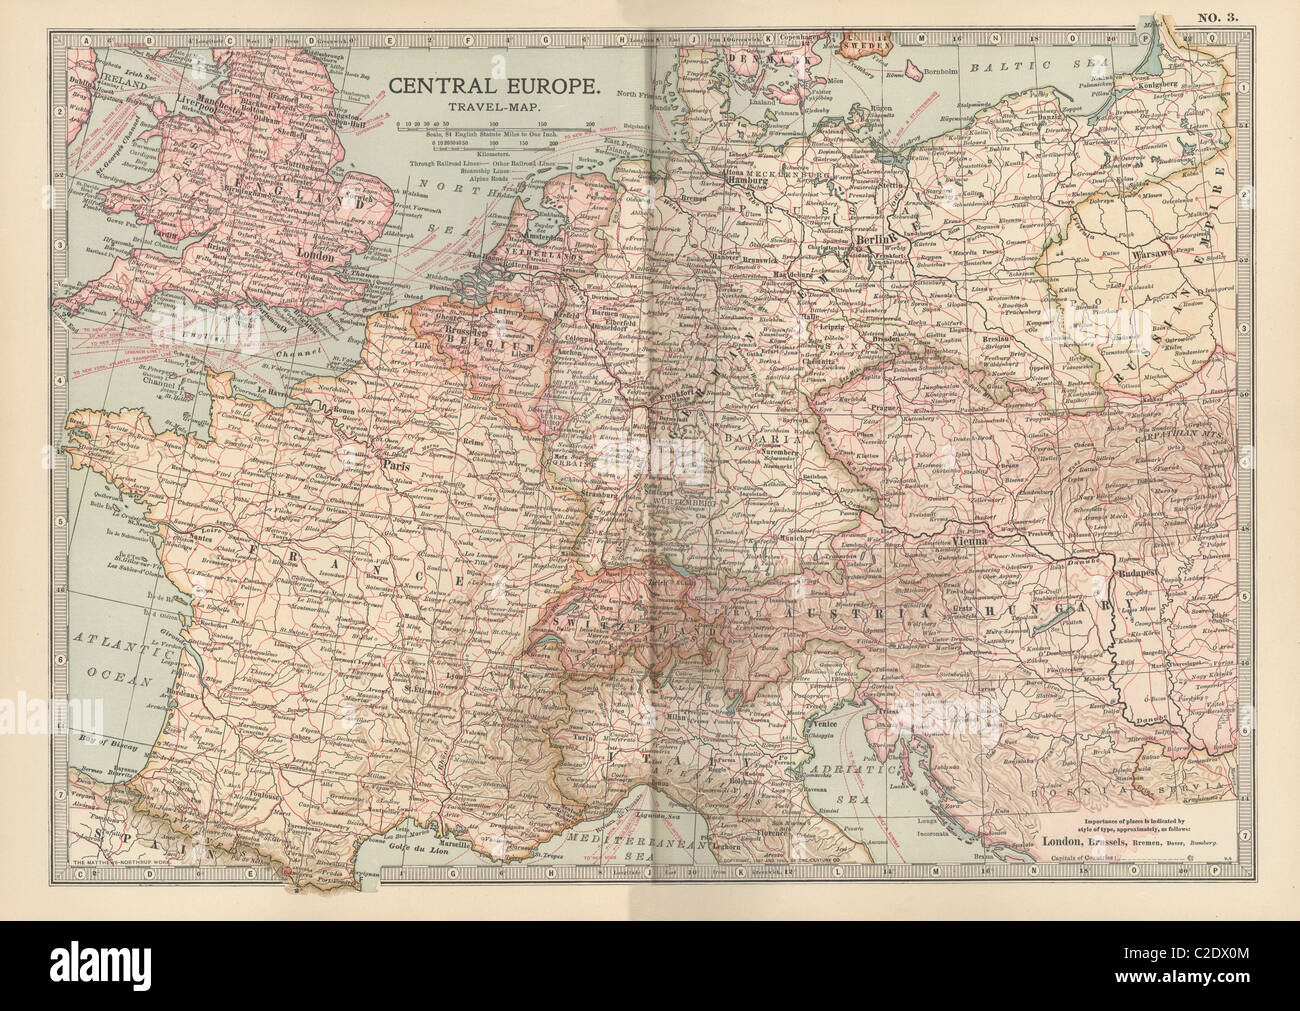 Map of Central Europe - Stock Image